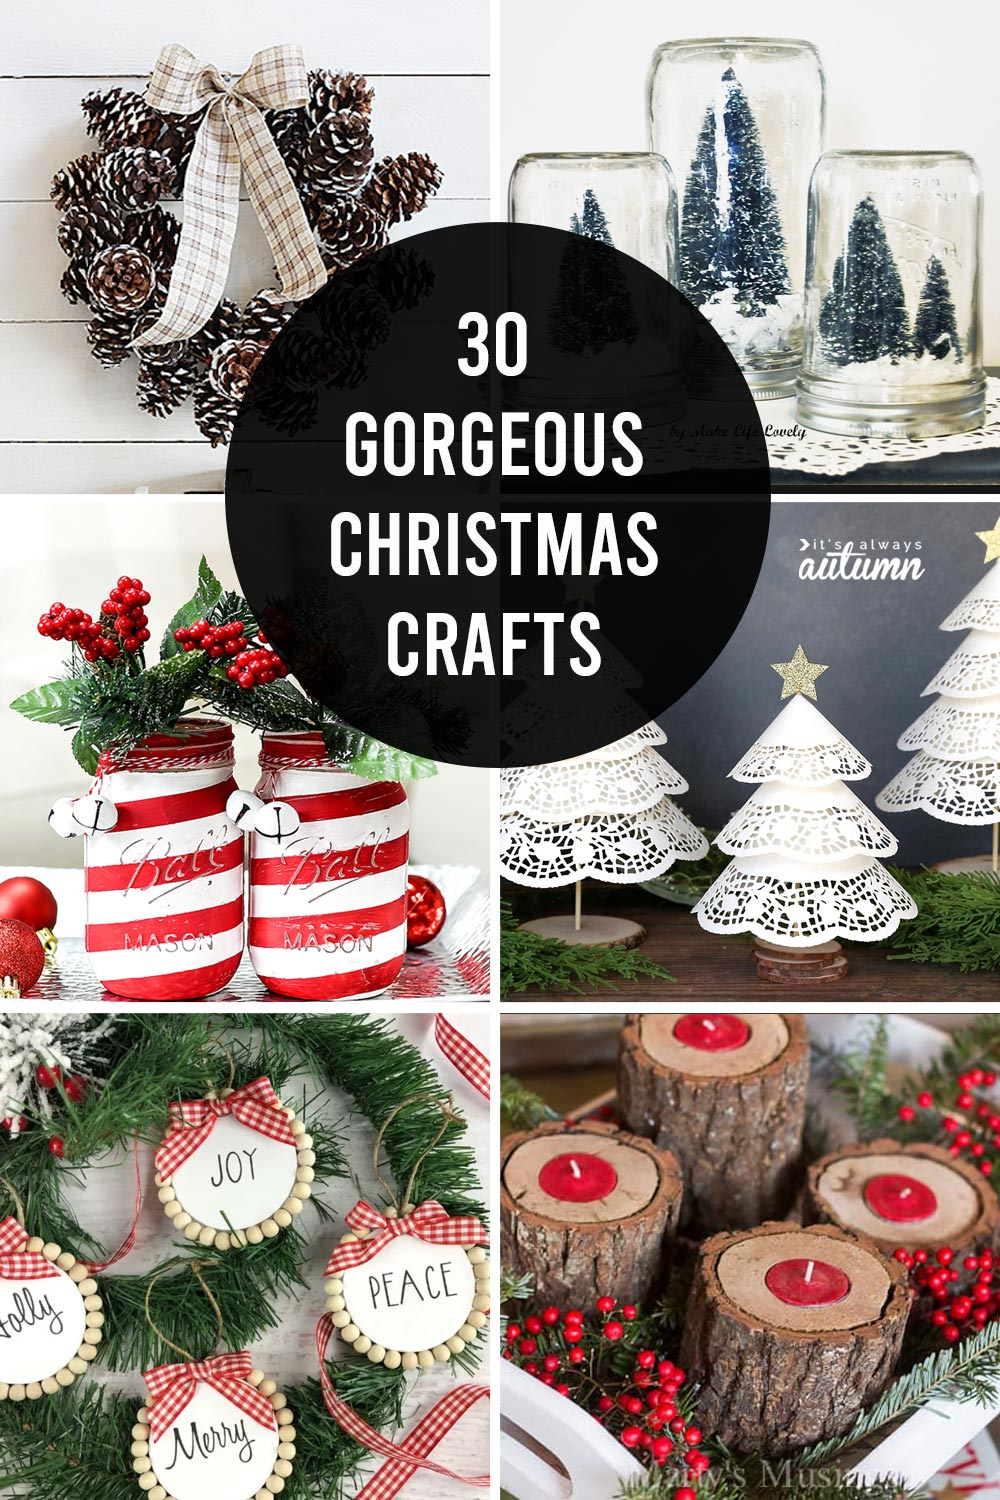 collage of Christmas crafts: pinecone wreath, doily trees, snow globes, wood slice candles